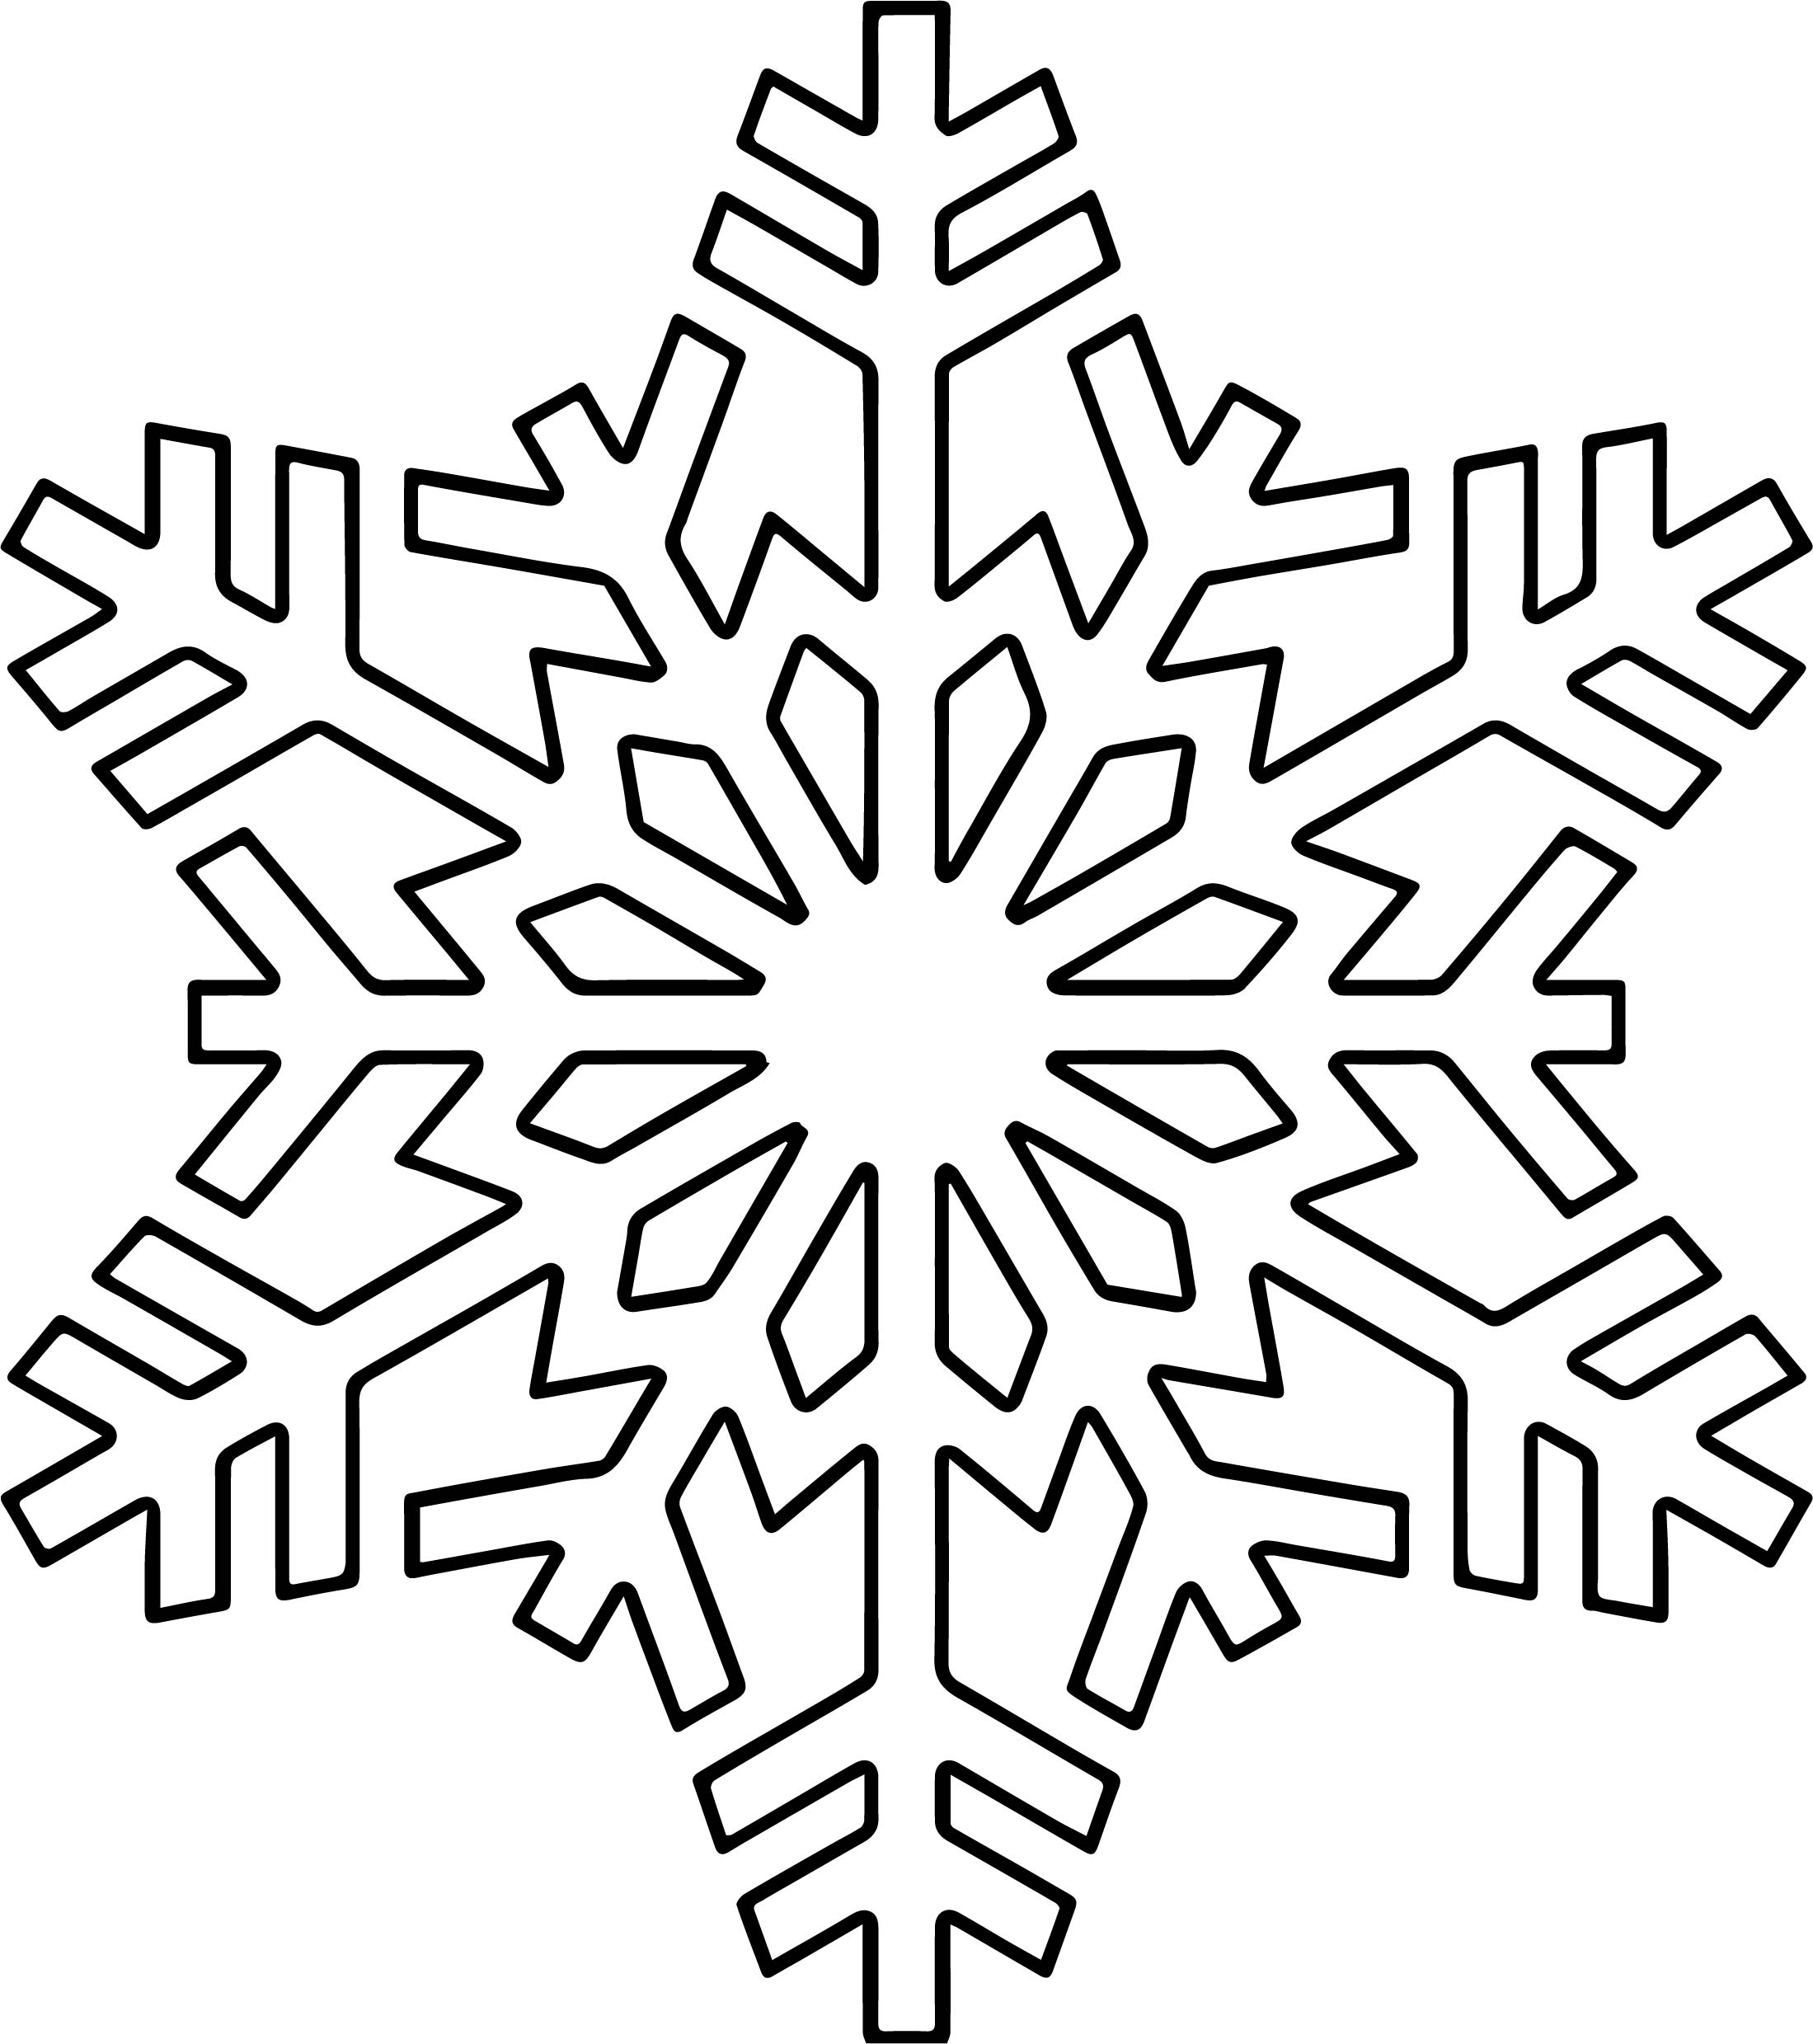 Snowflake one coloring page for Snowflake coloring pages printable